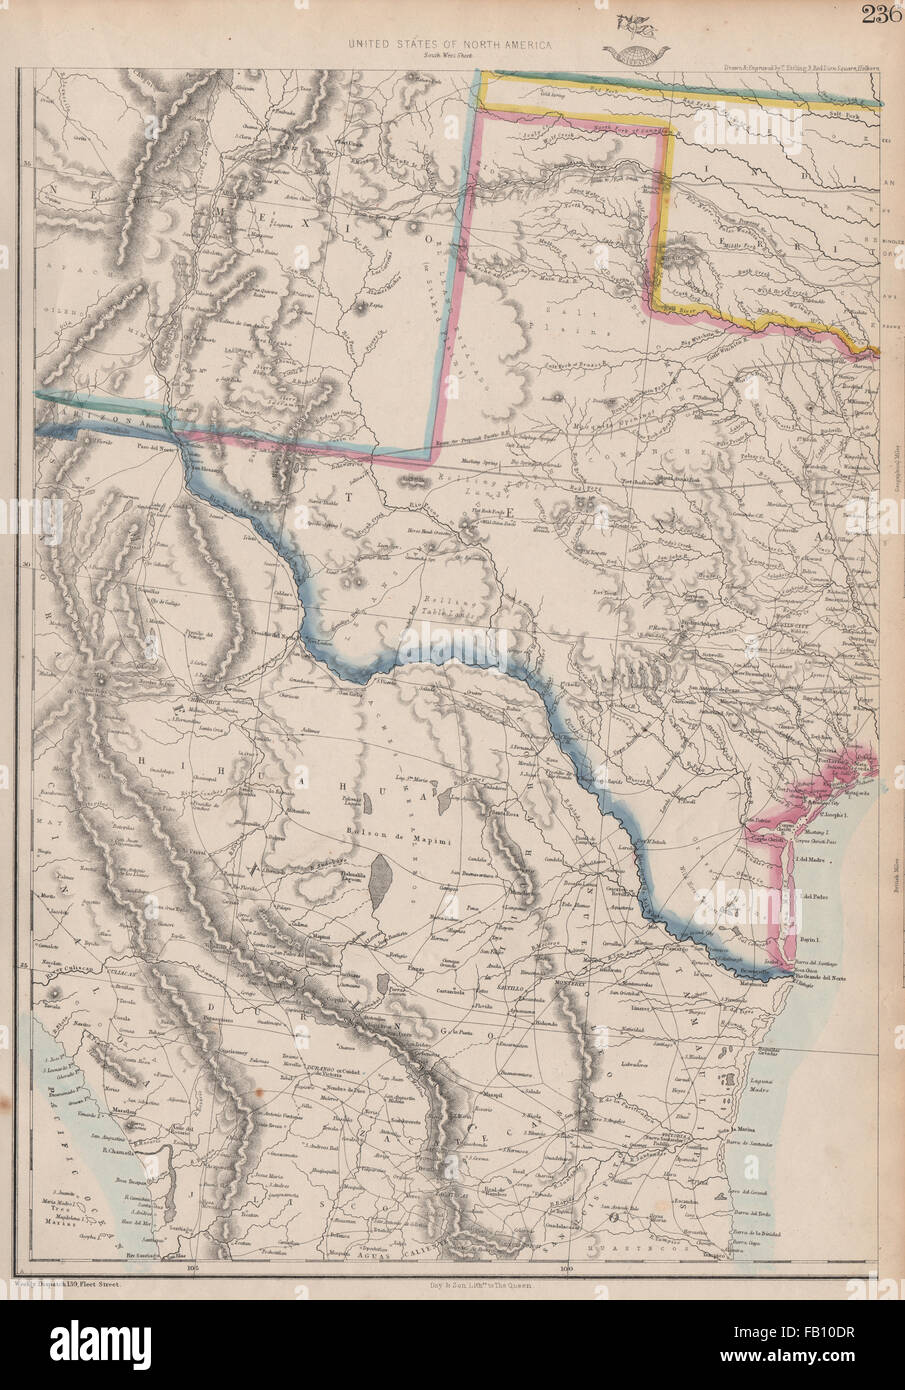 USA SOUTH. Texas New Mexico. Gadsden purchase shown as Arizona.ETTLING, 1862 map - Stock Image